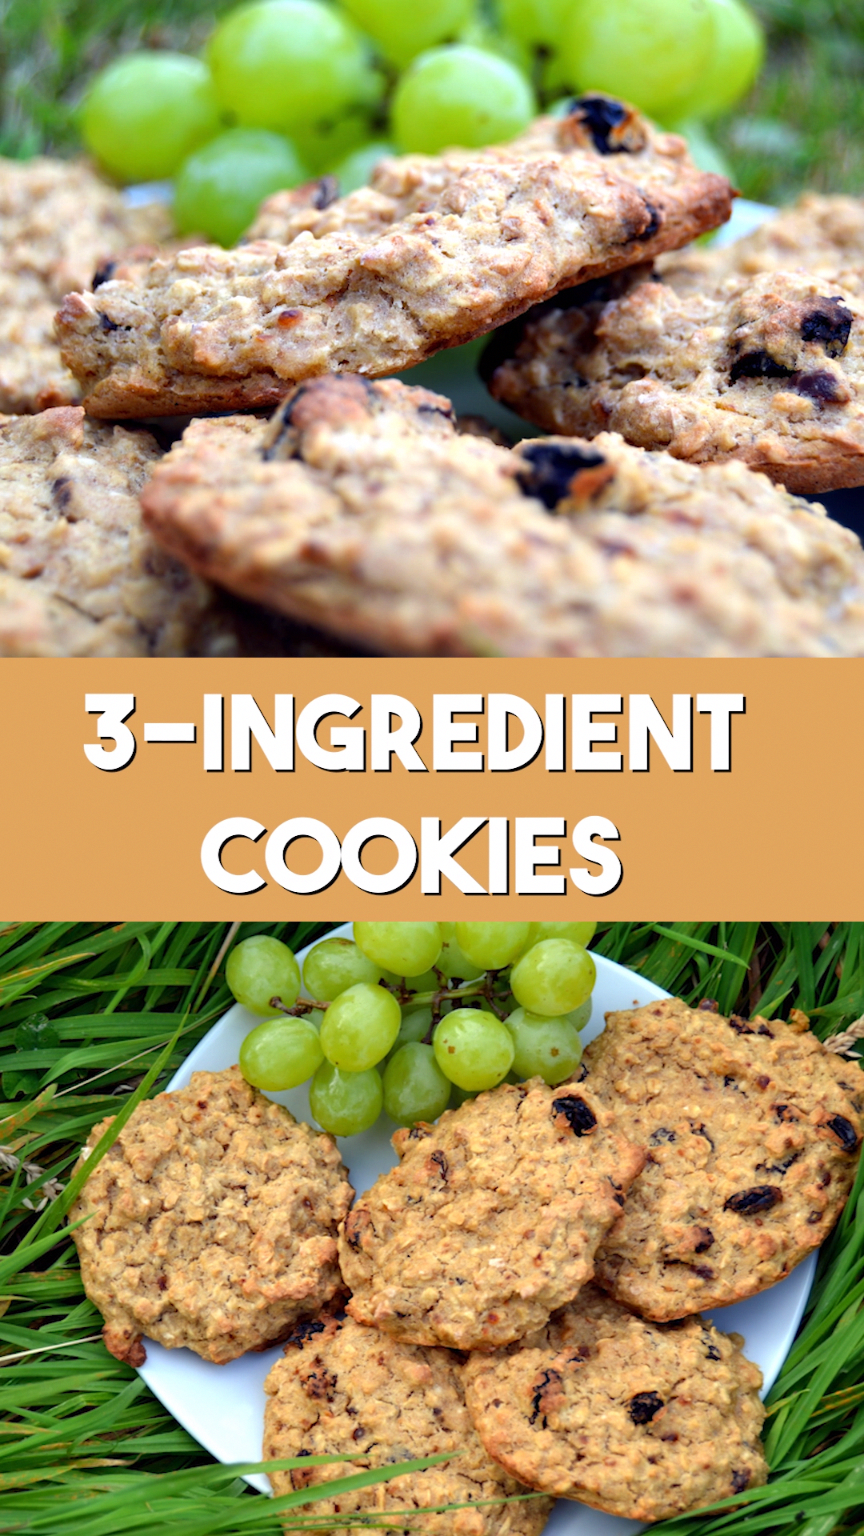 3-Ingredient Healthy Cookies Recipe with banana, oats and raisins. Can be made gluten free. No sugar, no butter, no flour and easy to make